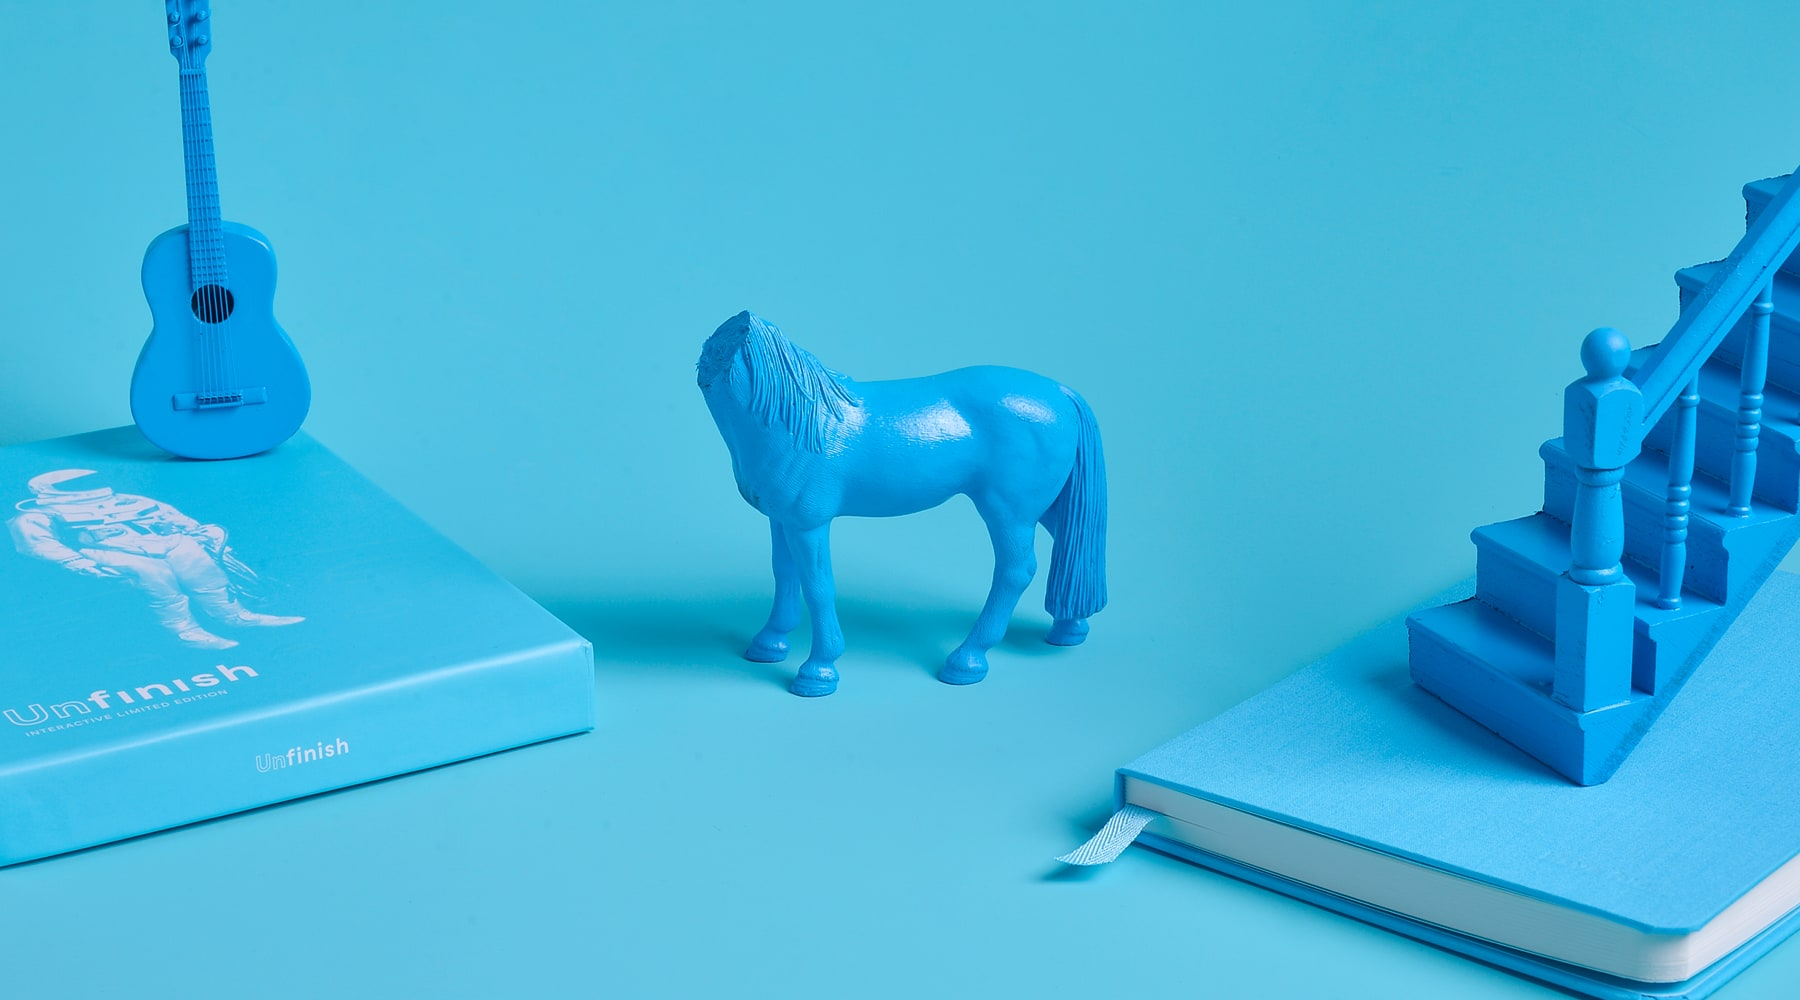 Blue props on blue background with Unfinish notebook